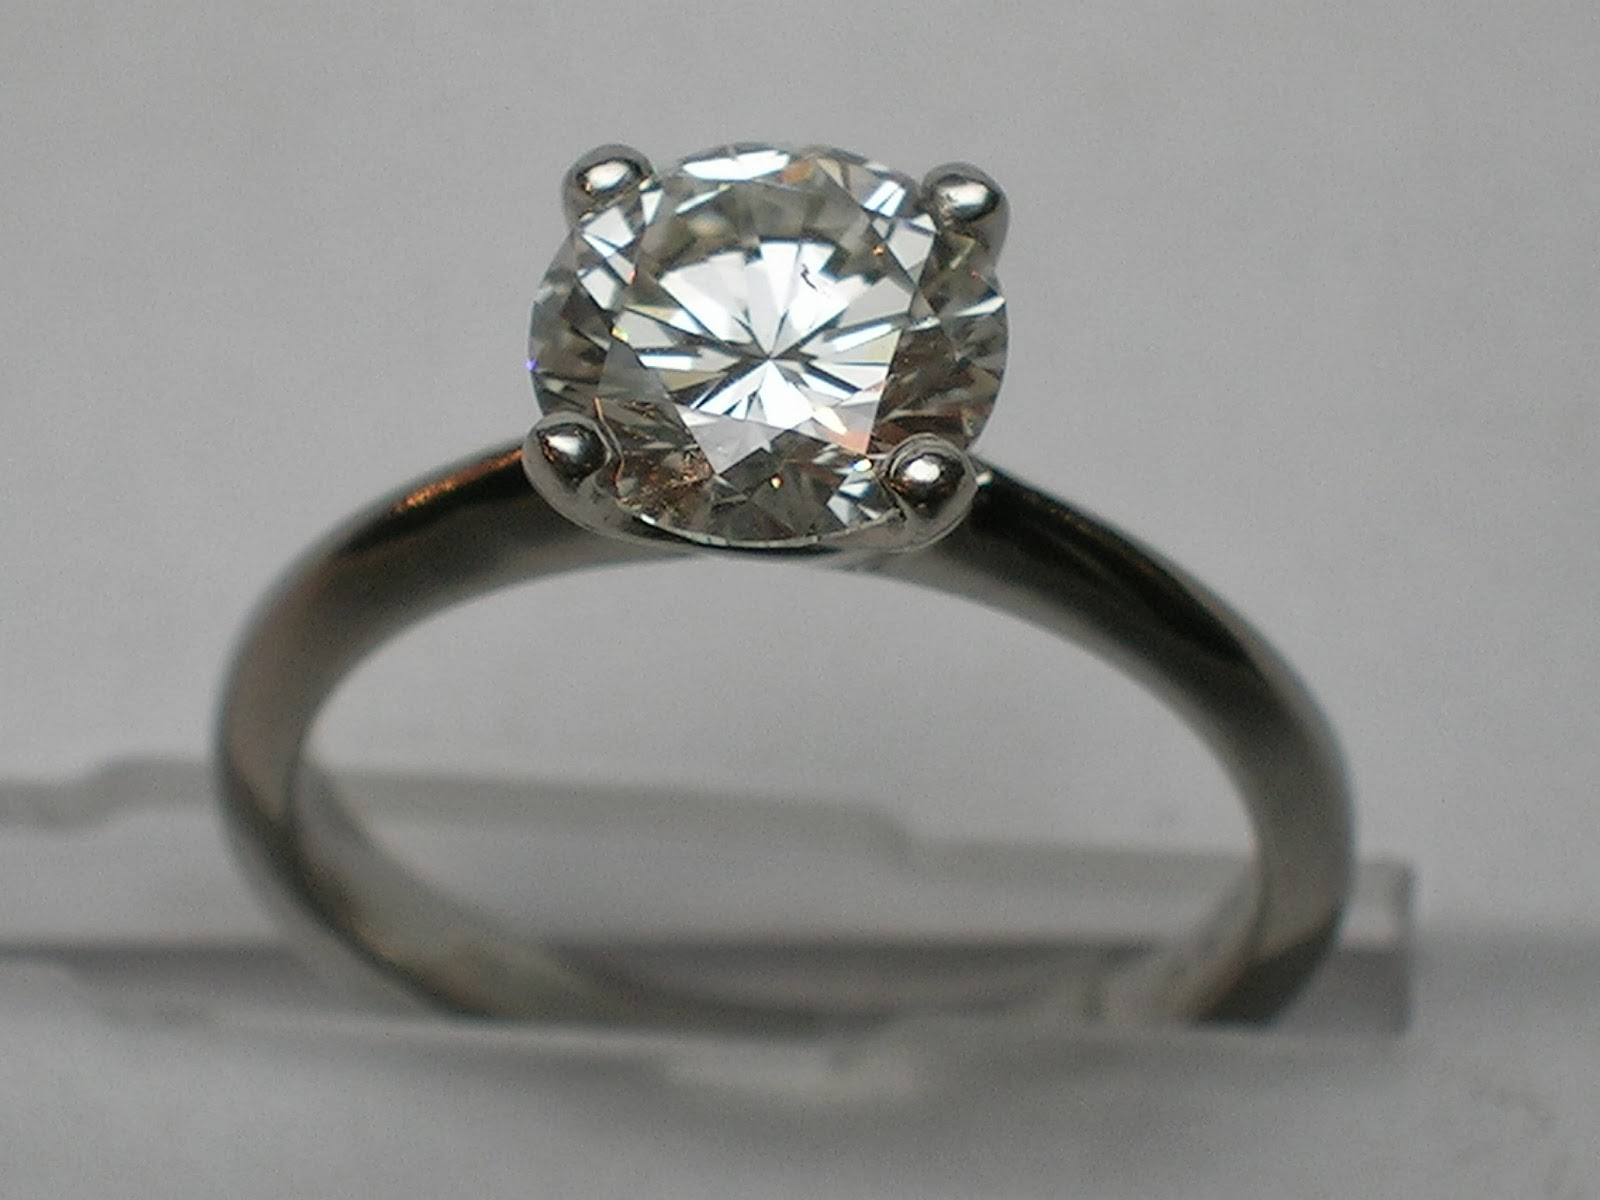 The old fashioned engagement rings Ring Review